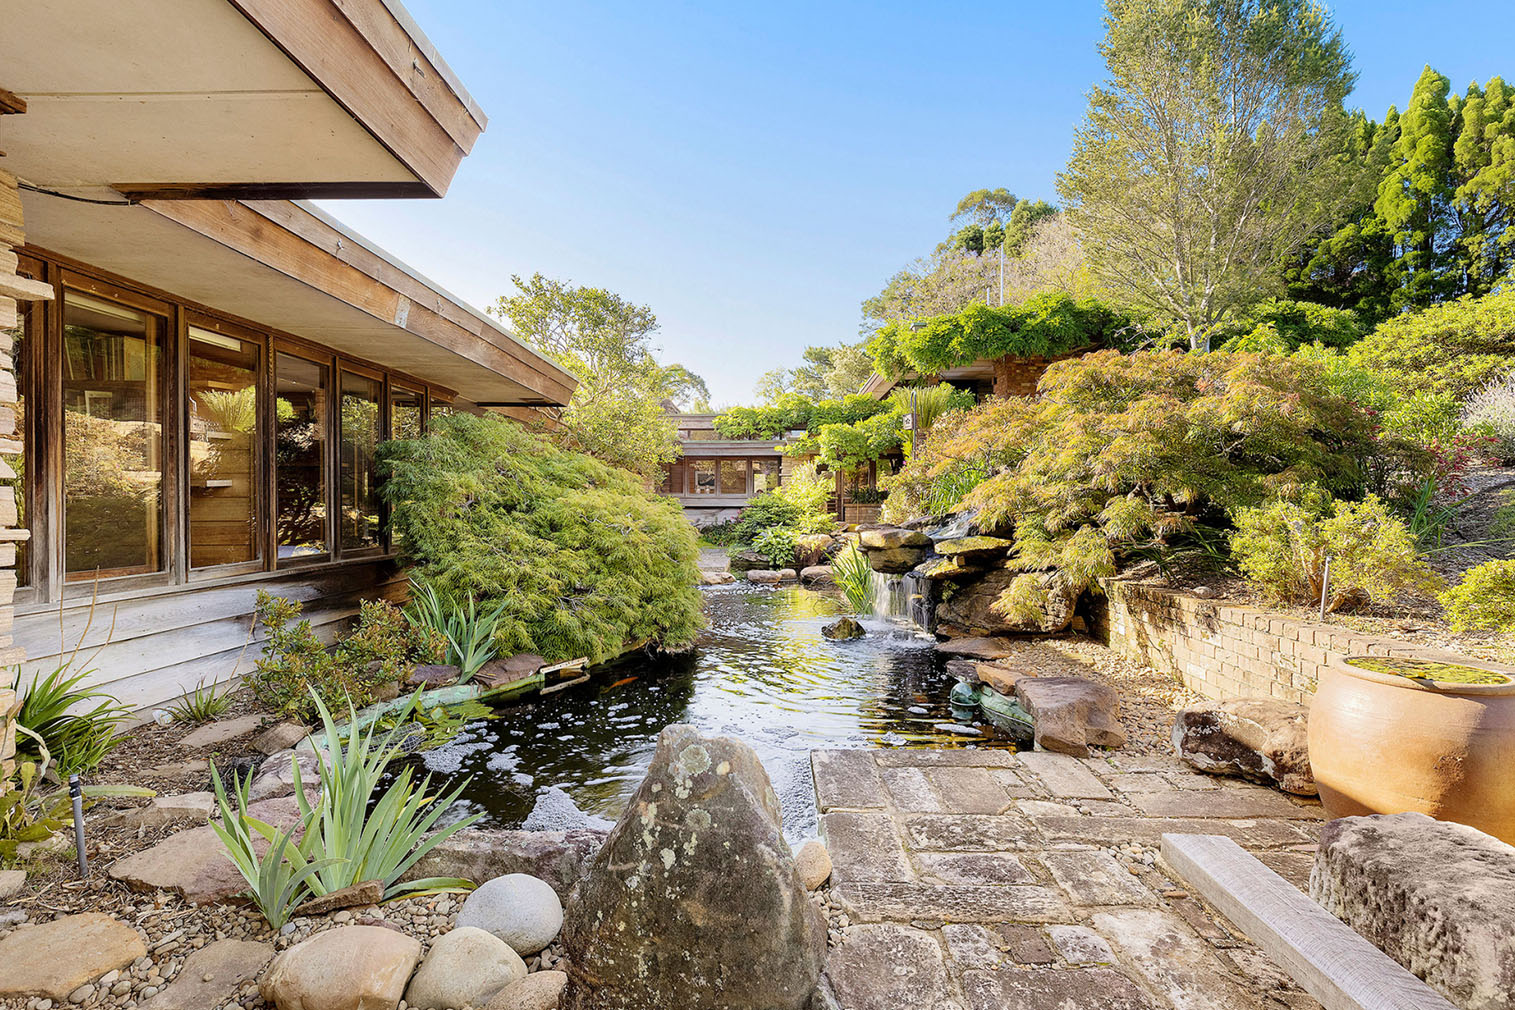 Organic modernist home by Bruce Rickard lists for the first time ever in New South Wales